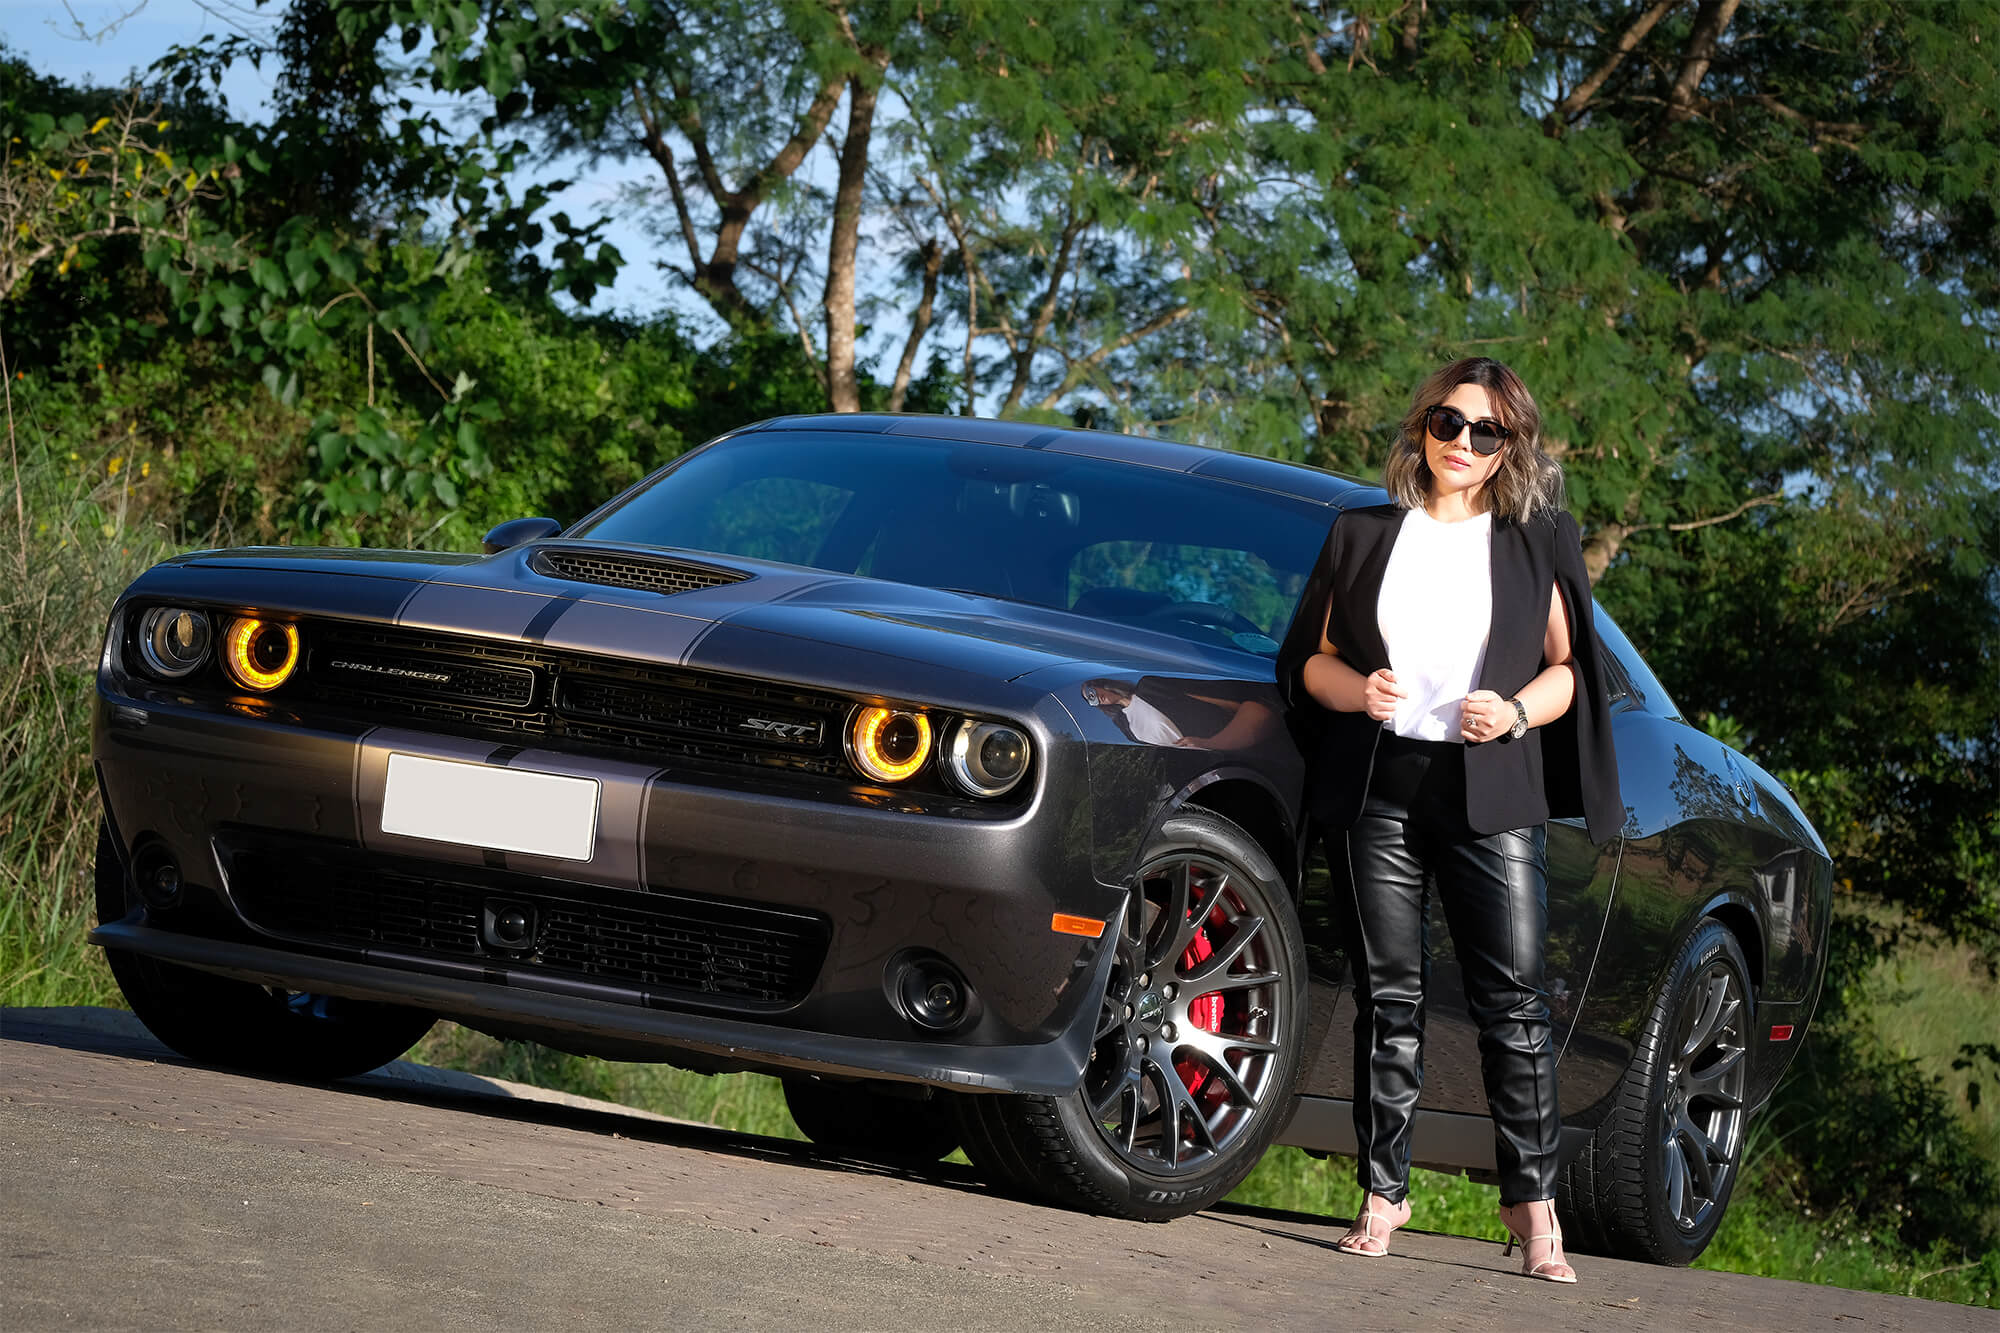 Entrepreneur Amabel Ruiz goes to work (and play) in her Dodge Challenger.